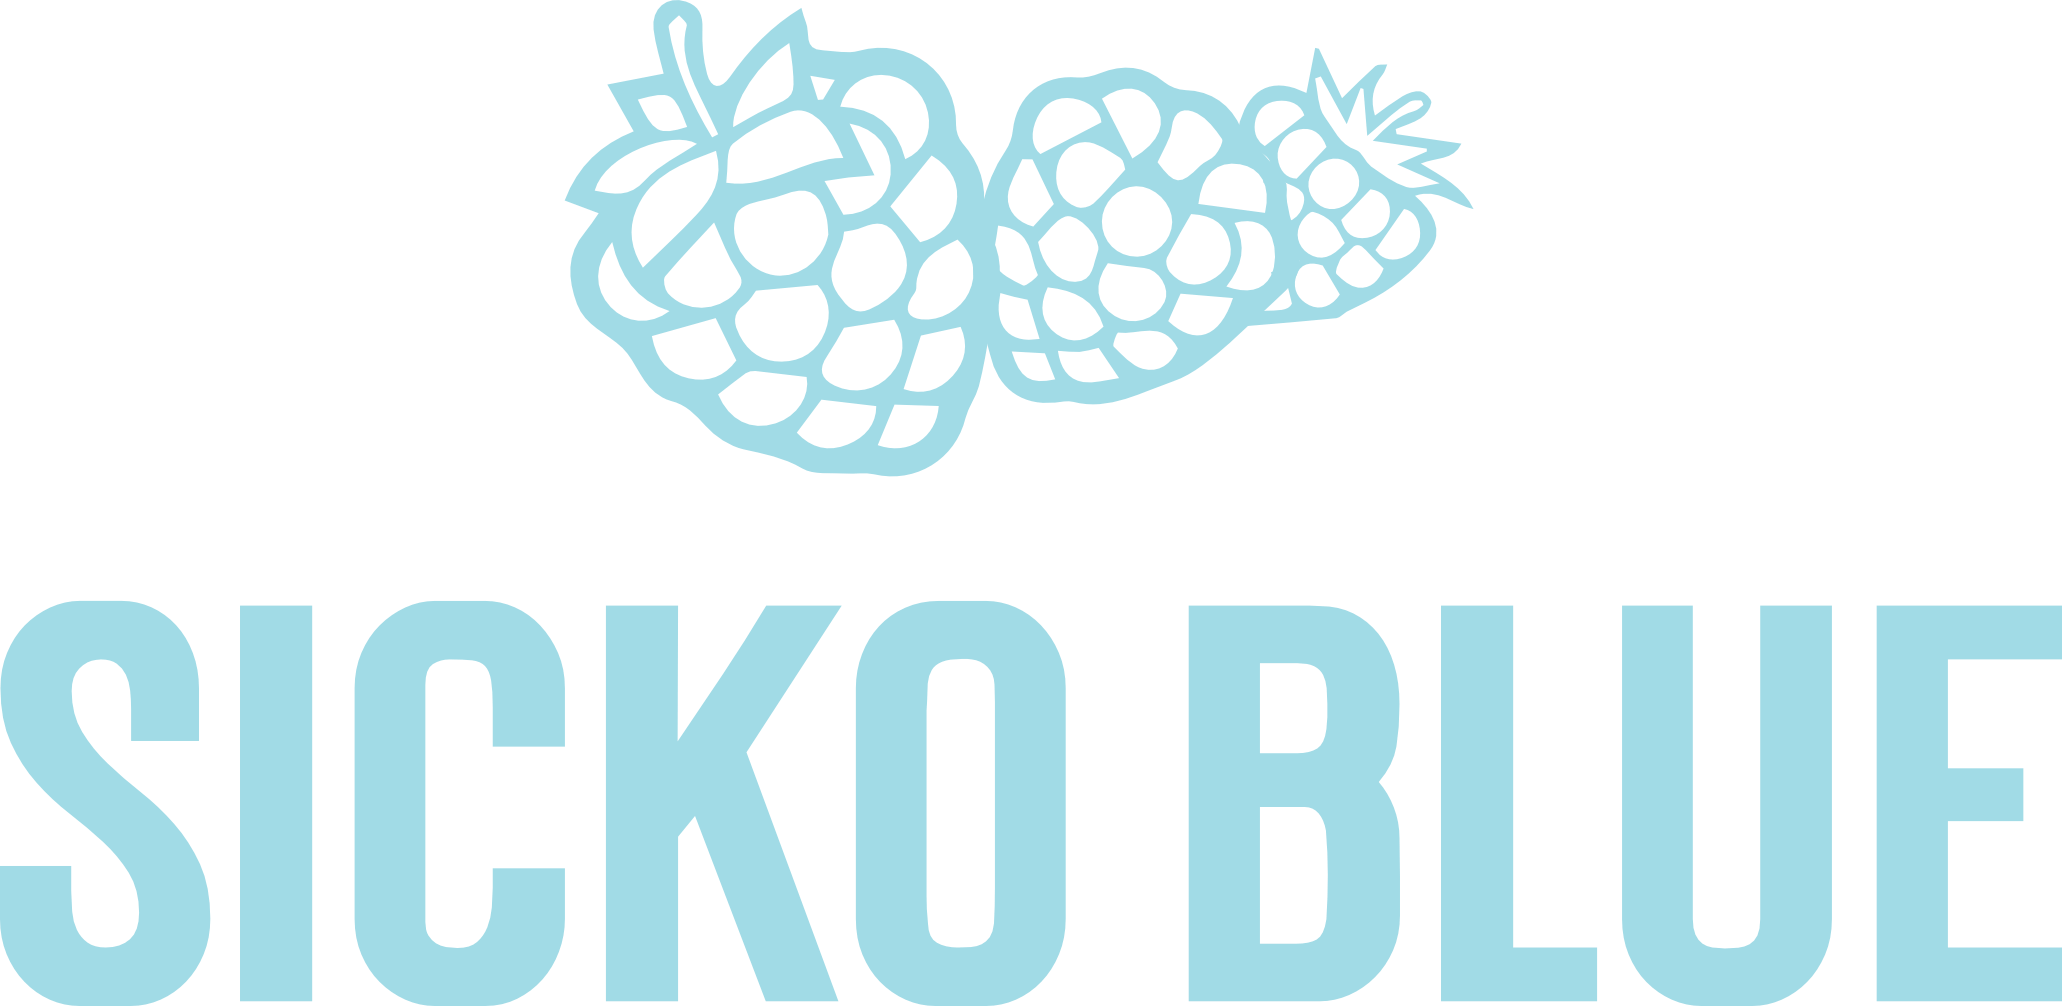 Sicko Blue - Nasty Juice